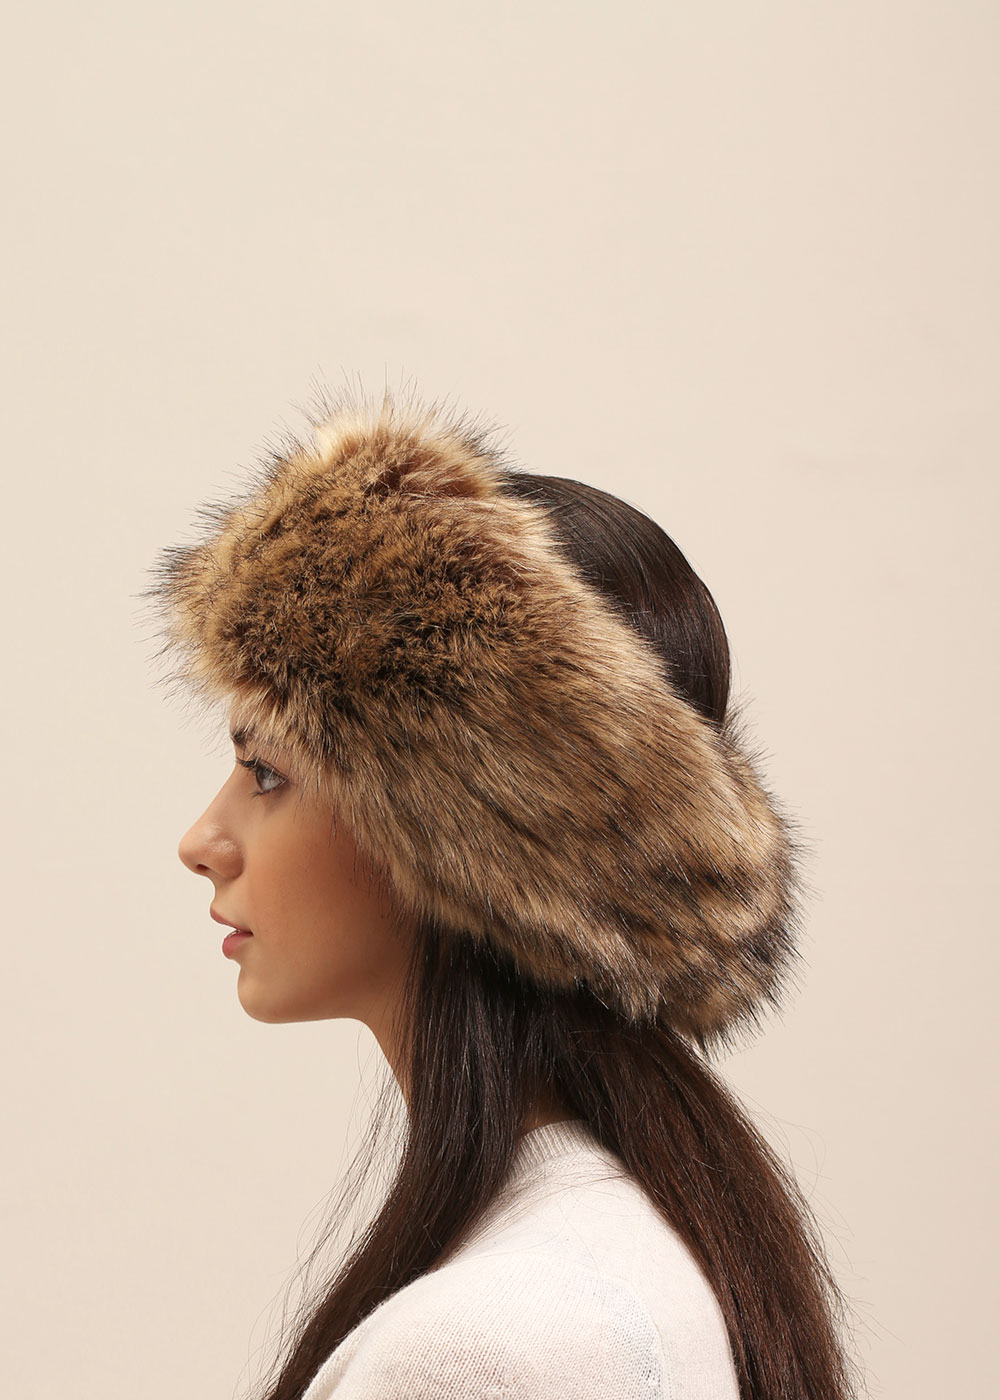 Furry Headband - $22